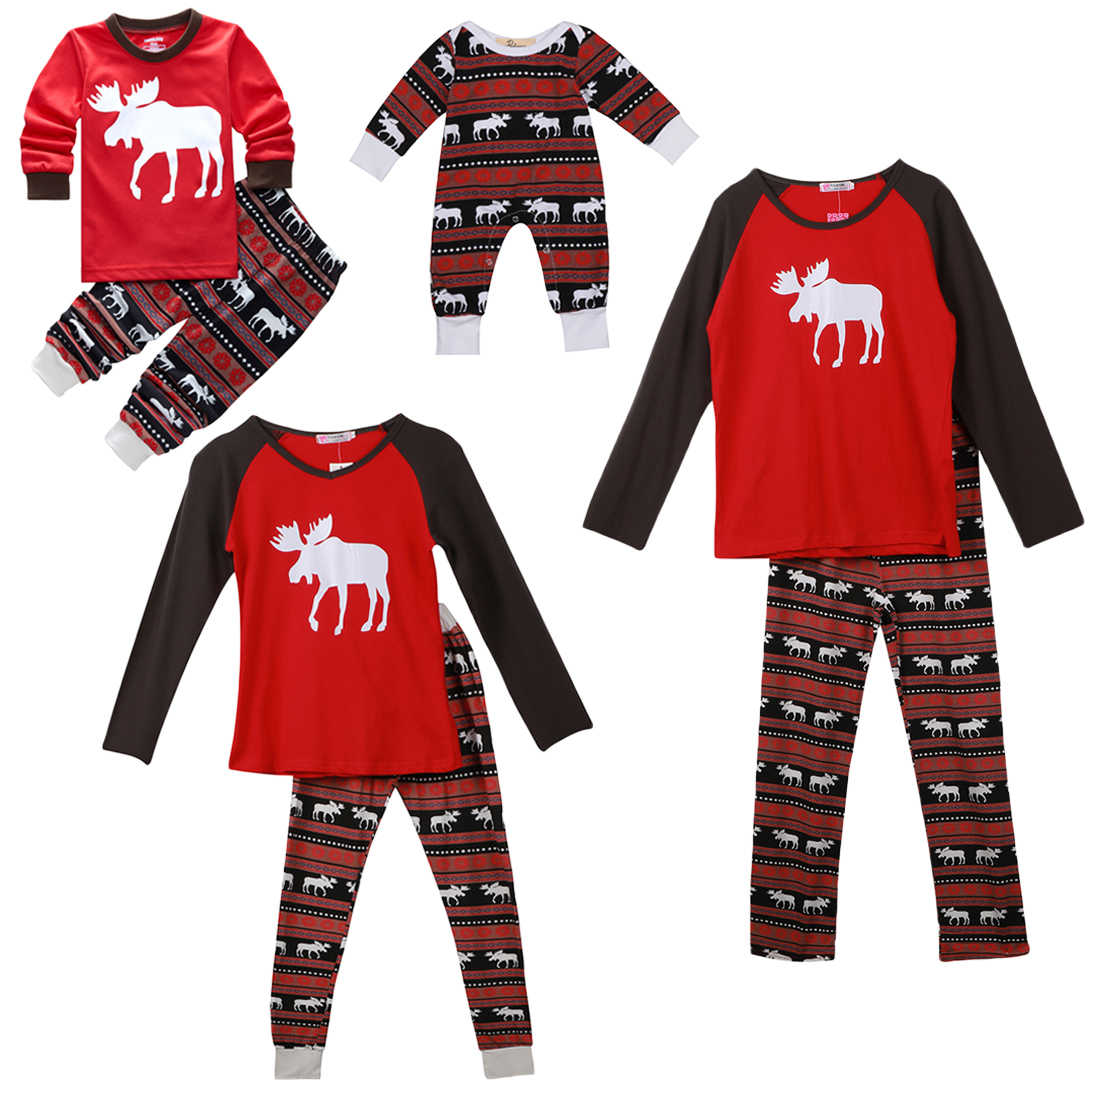 Xmas Moose Fairy Christmas Family Matching Pajamas Set Adult Kids Sleepwear Nightwear Pjs Photgraphy Prop Party Clothing